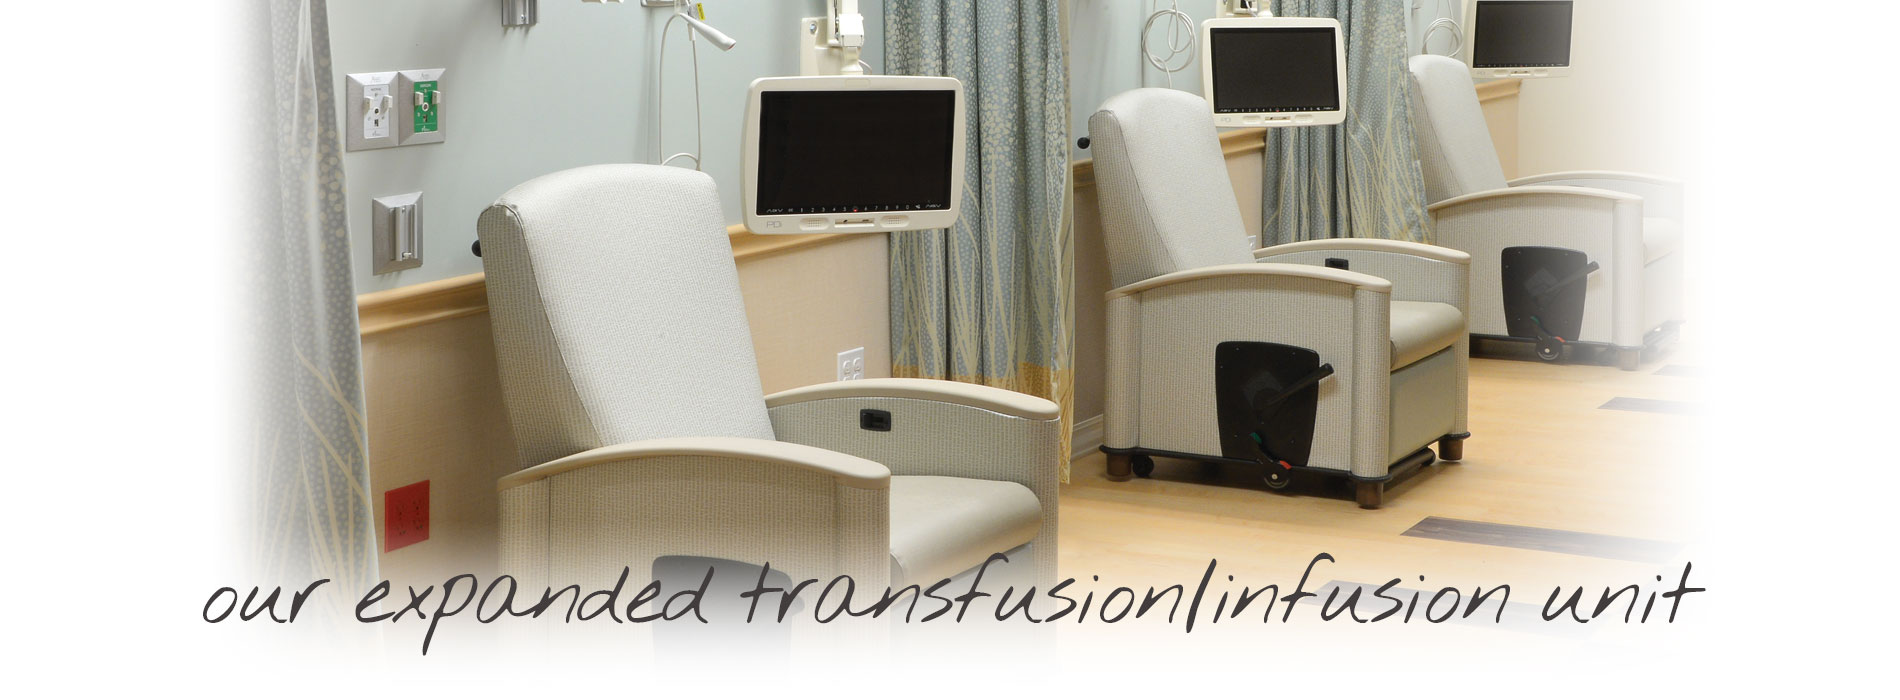 Infusion room with comfortable chairs and medical equipment